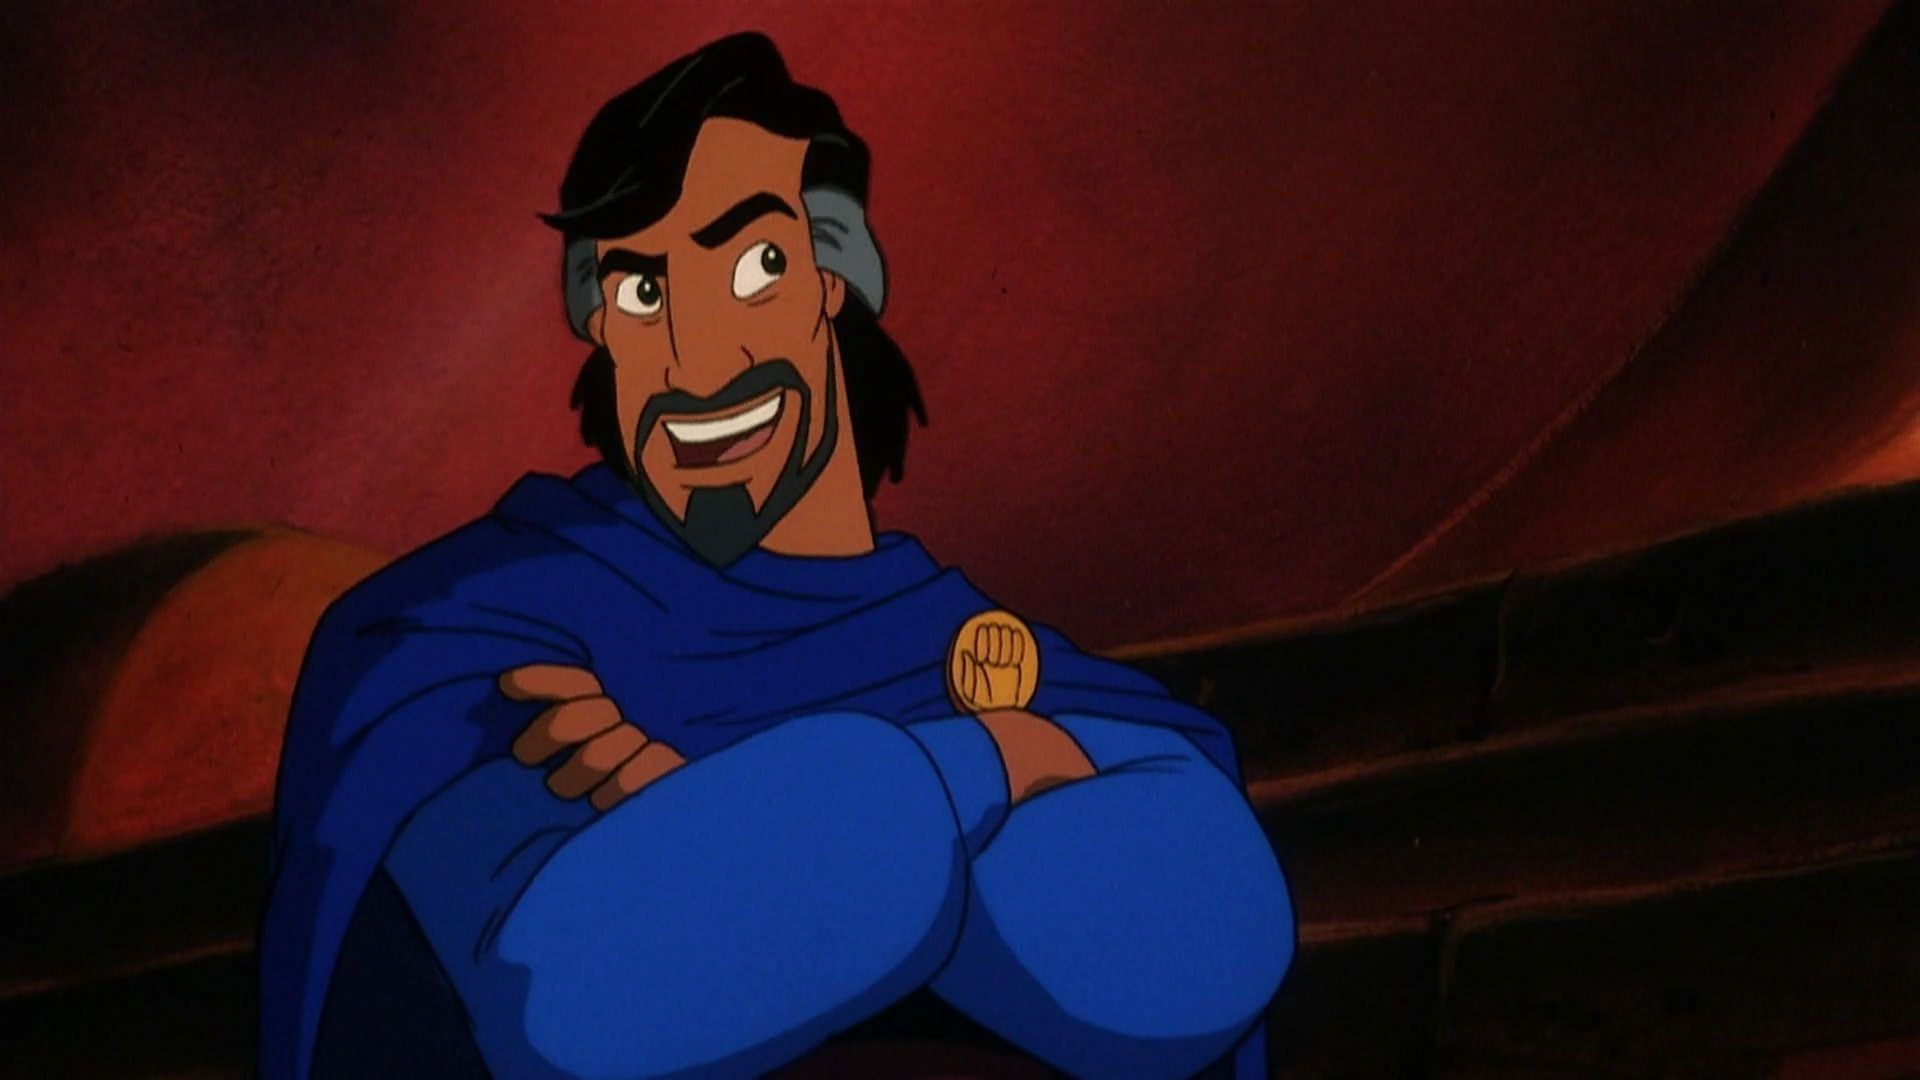 Cassim, a Middle Eastern man with salt-and-pepper hair, in Aladdin and the King of Thieves